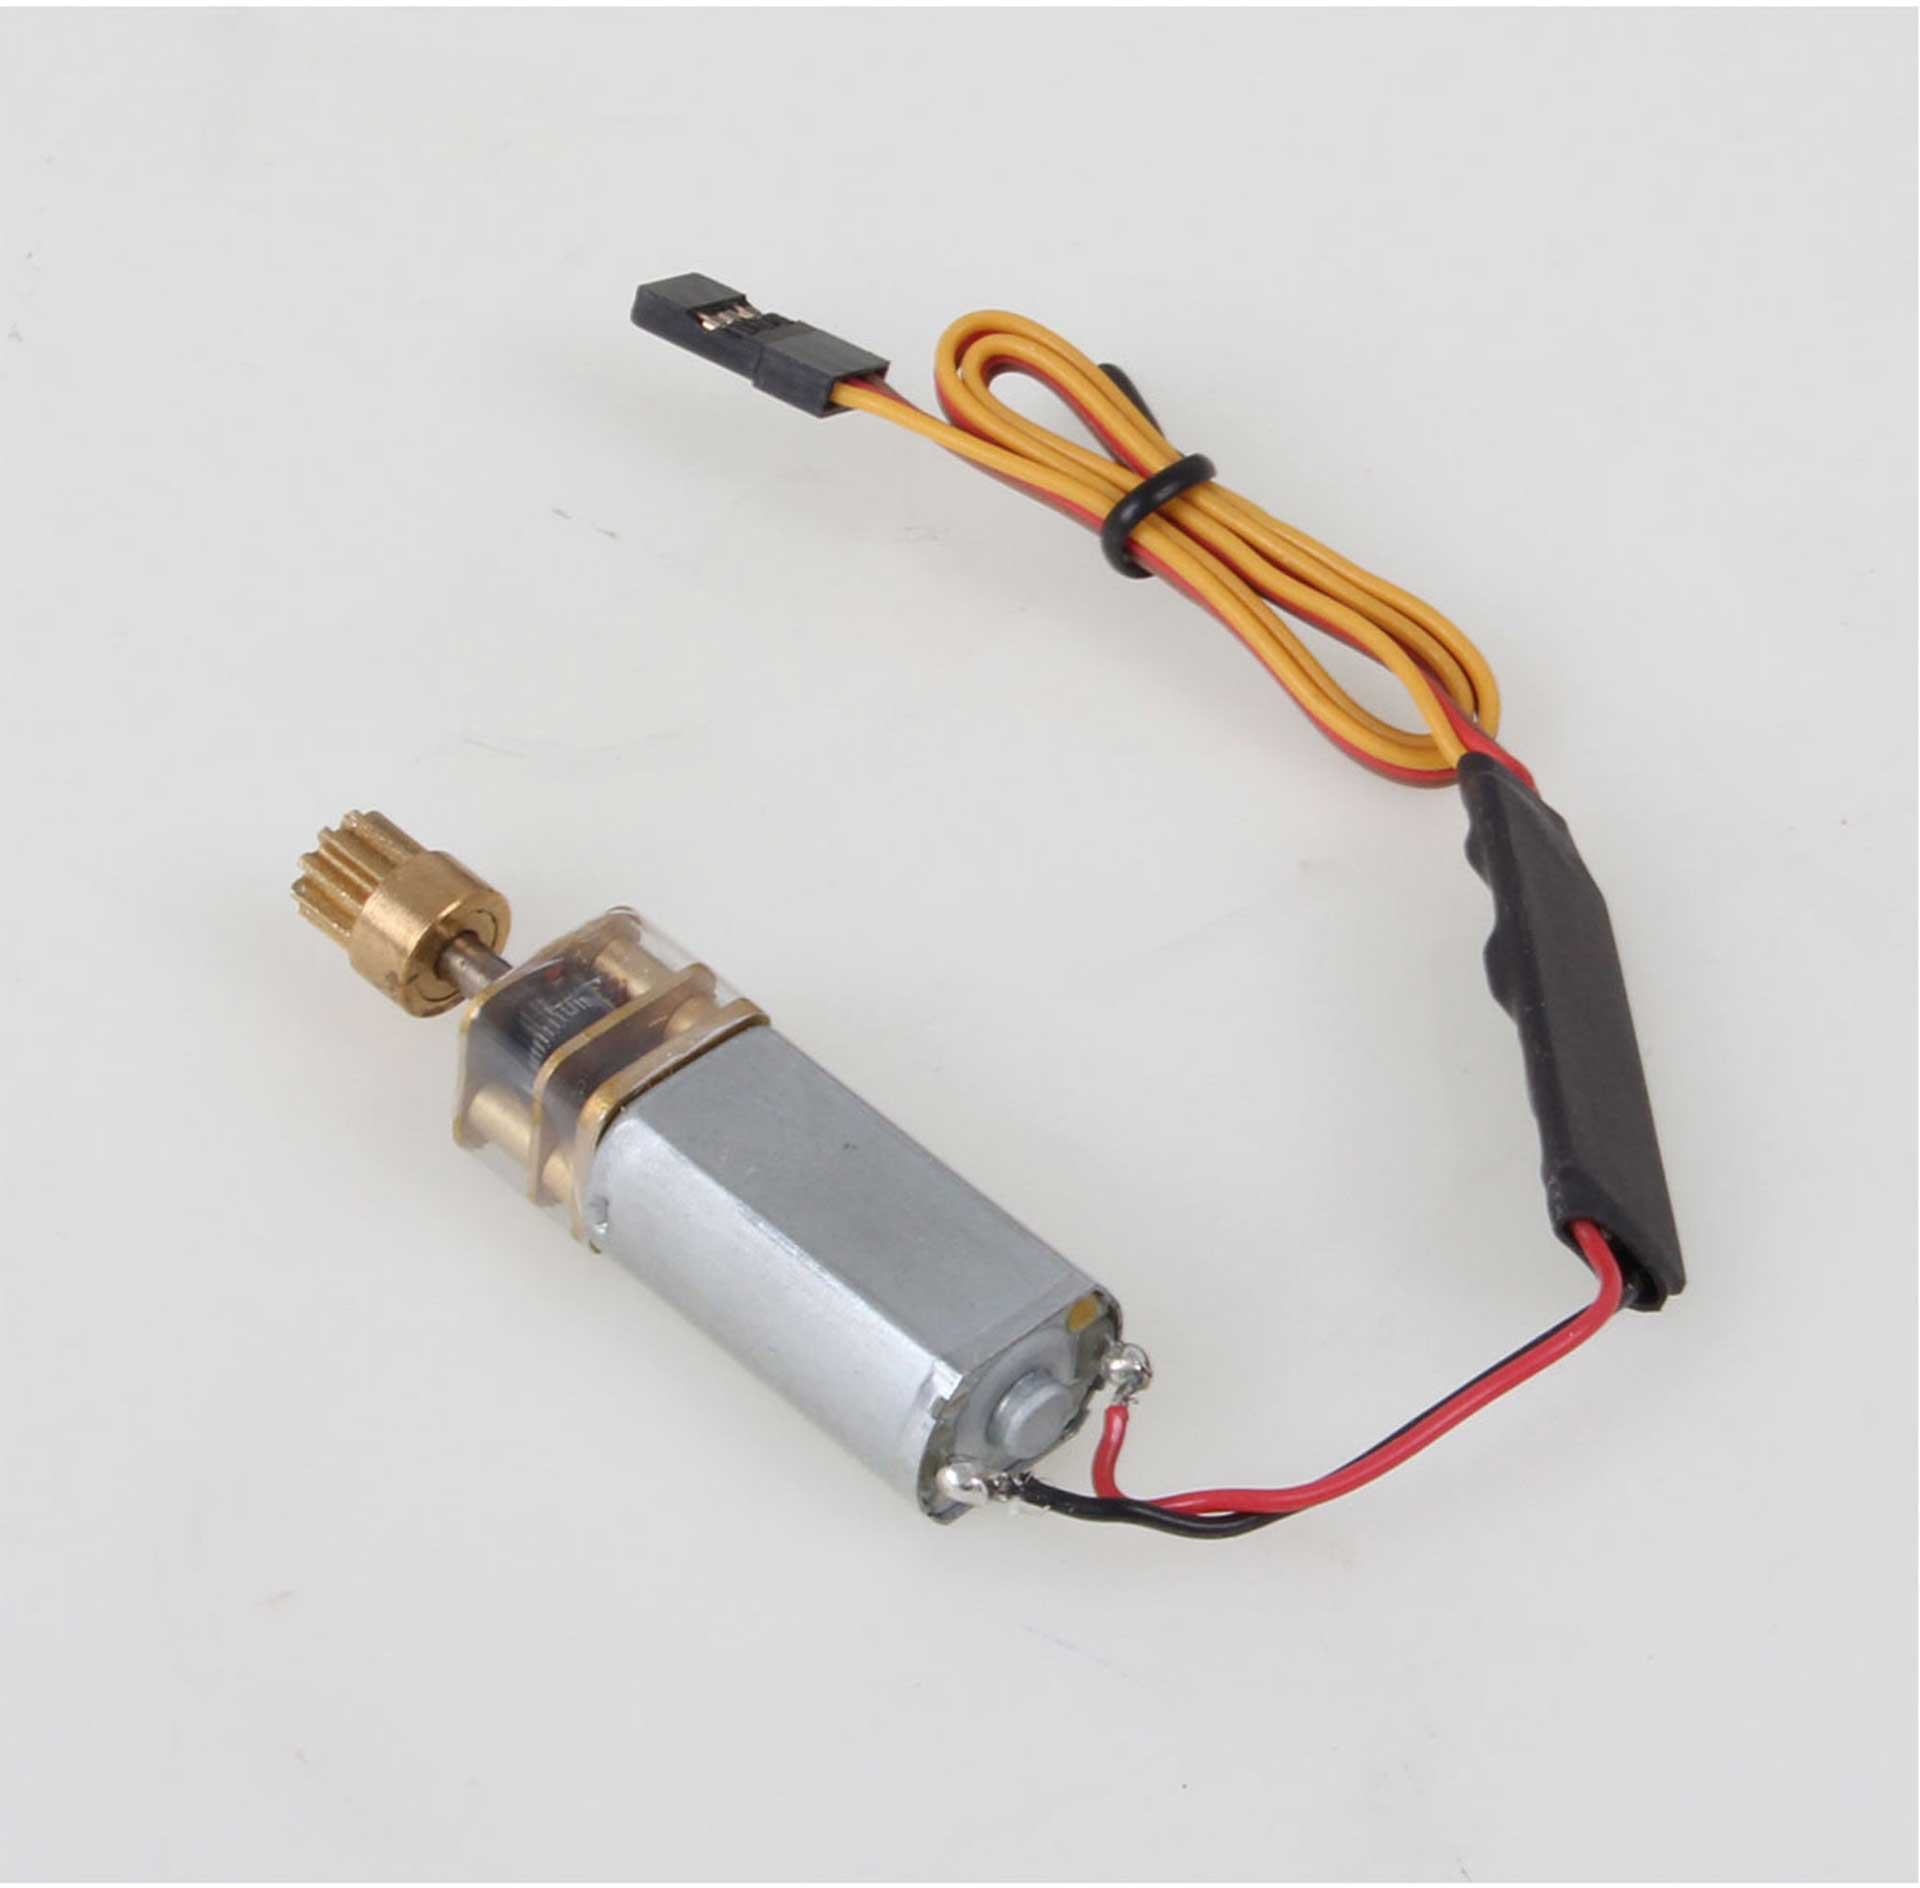 PLANET-HOBBY REPLACEMENT MOTOR WITH ELECTRONICS 1/6 GLIDER